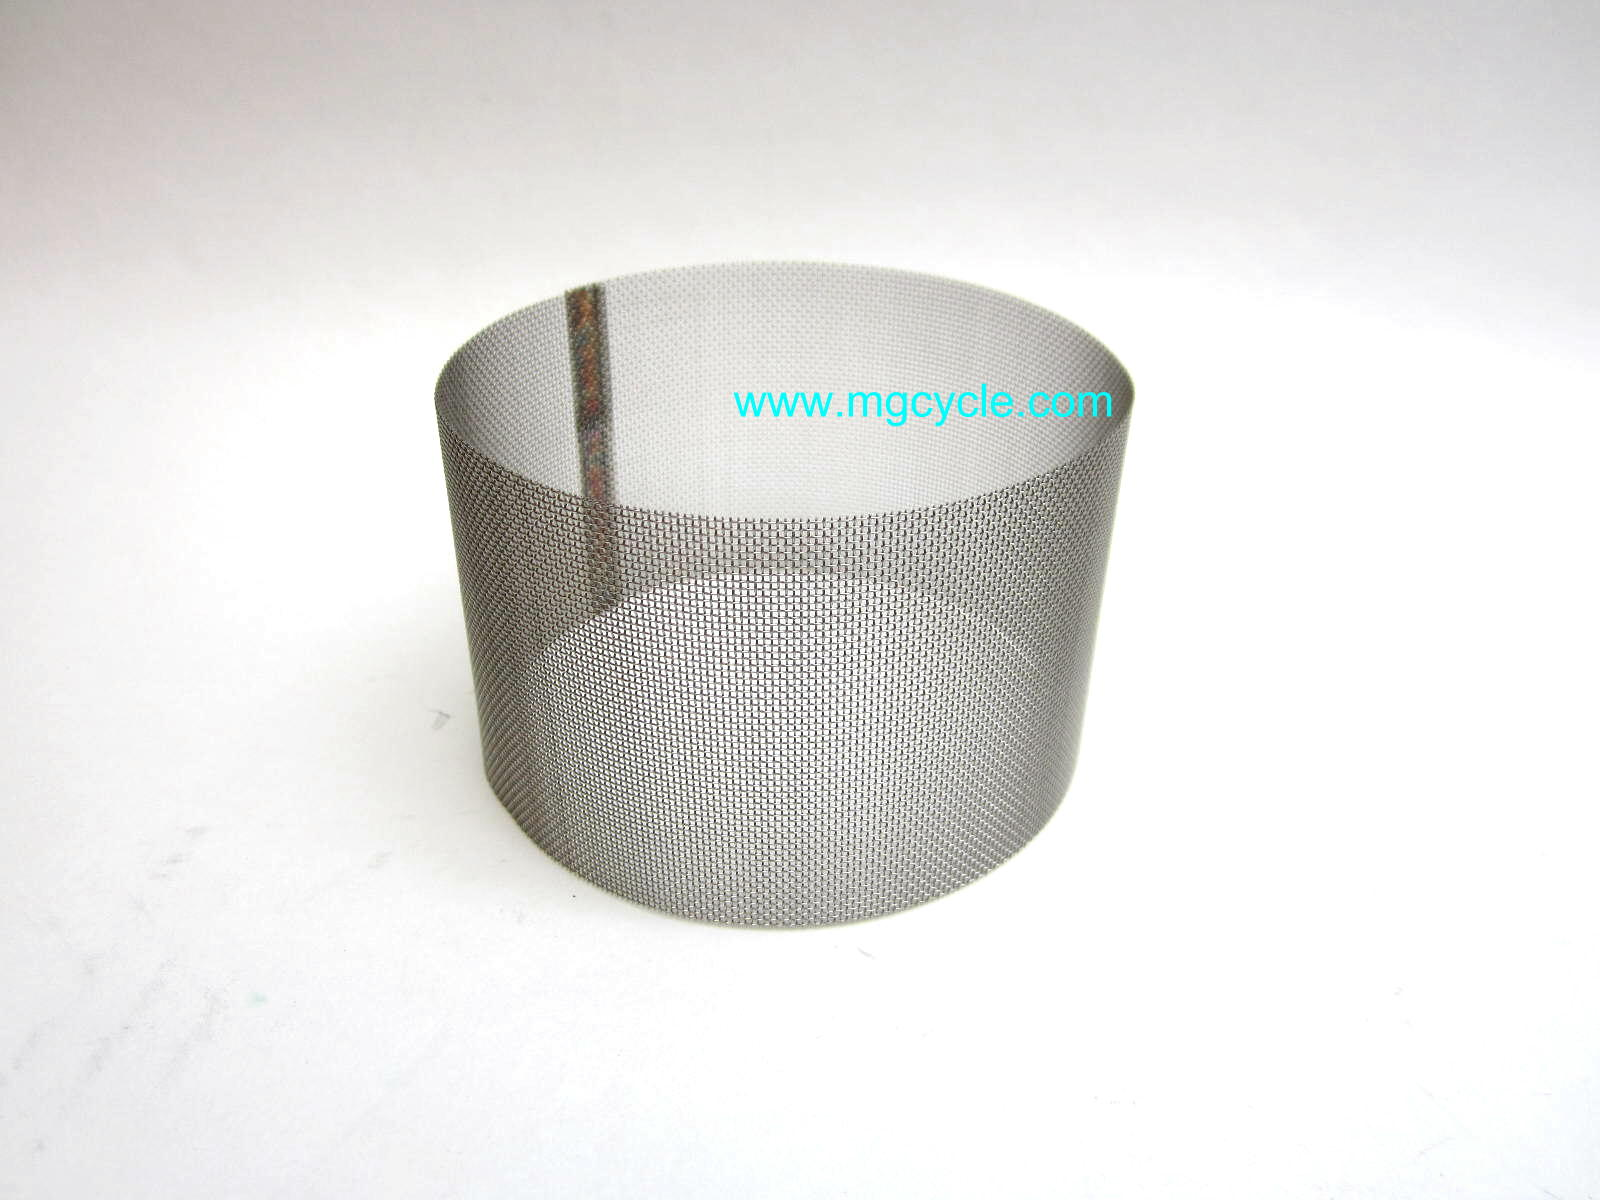 Oil filter screen, V700 Ambassador Eldorado 850T V7 Sport 750S